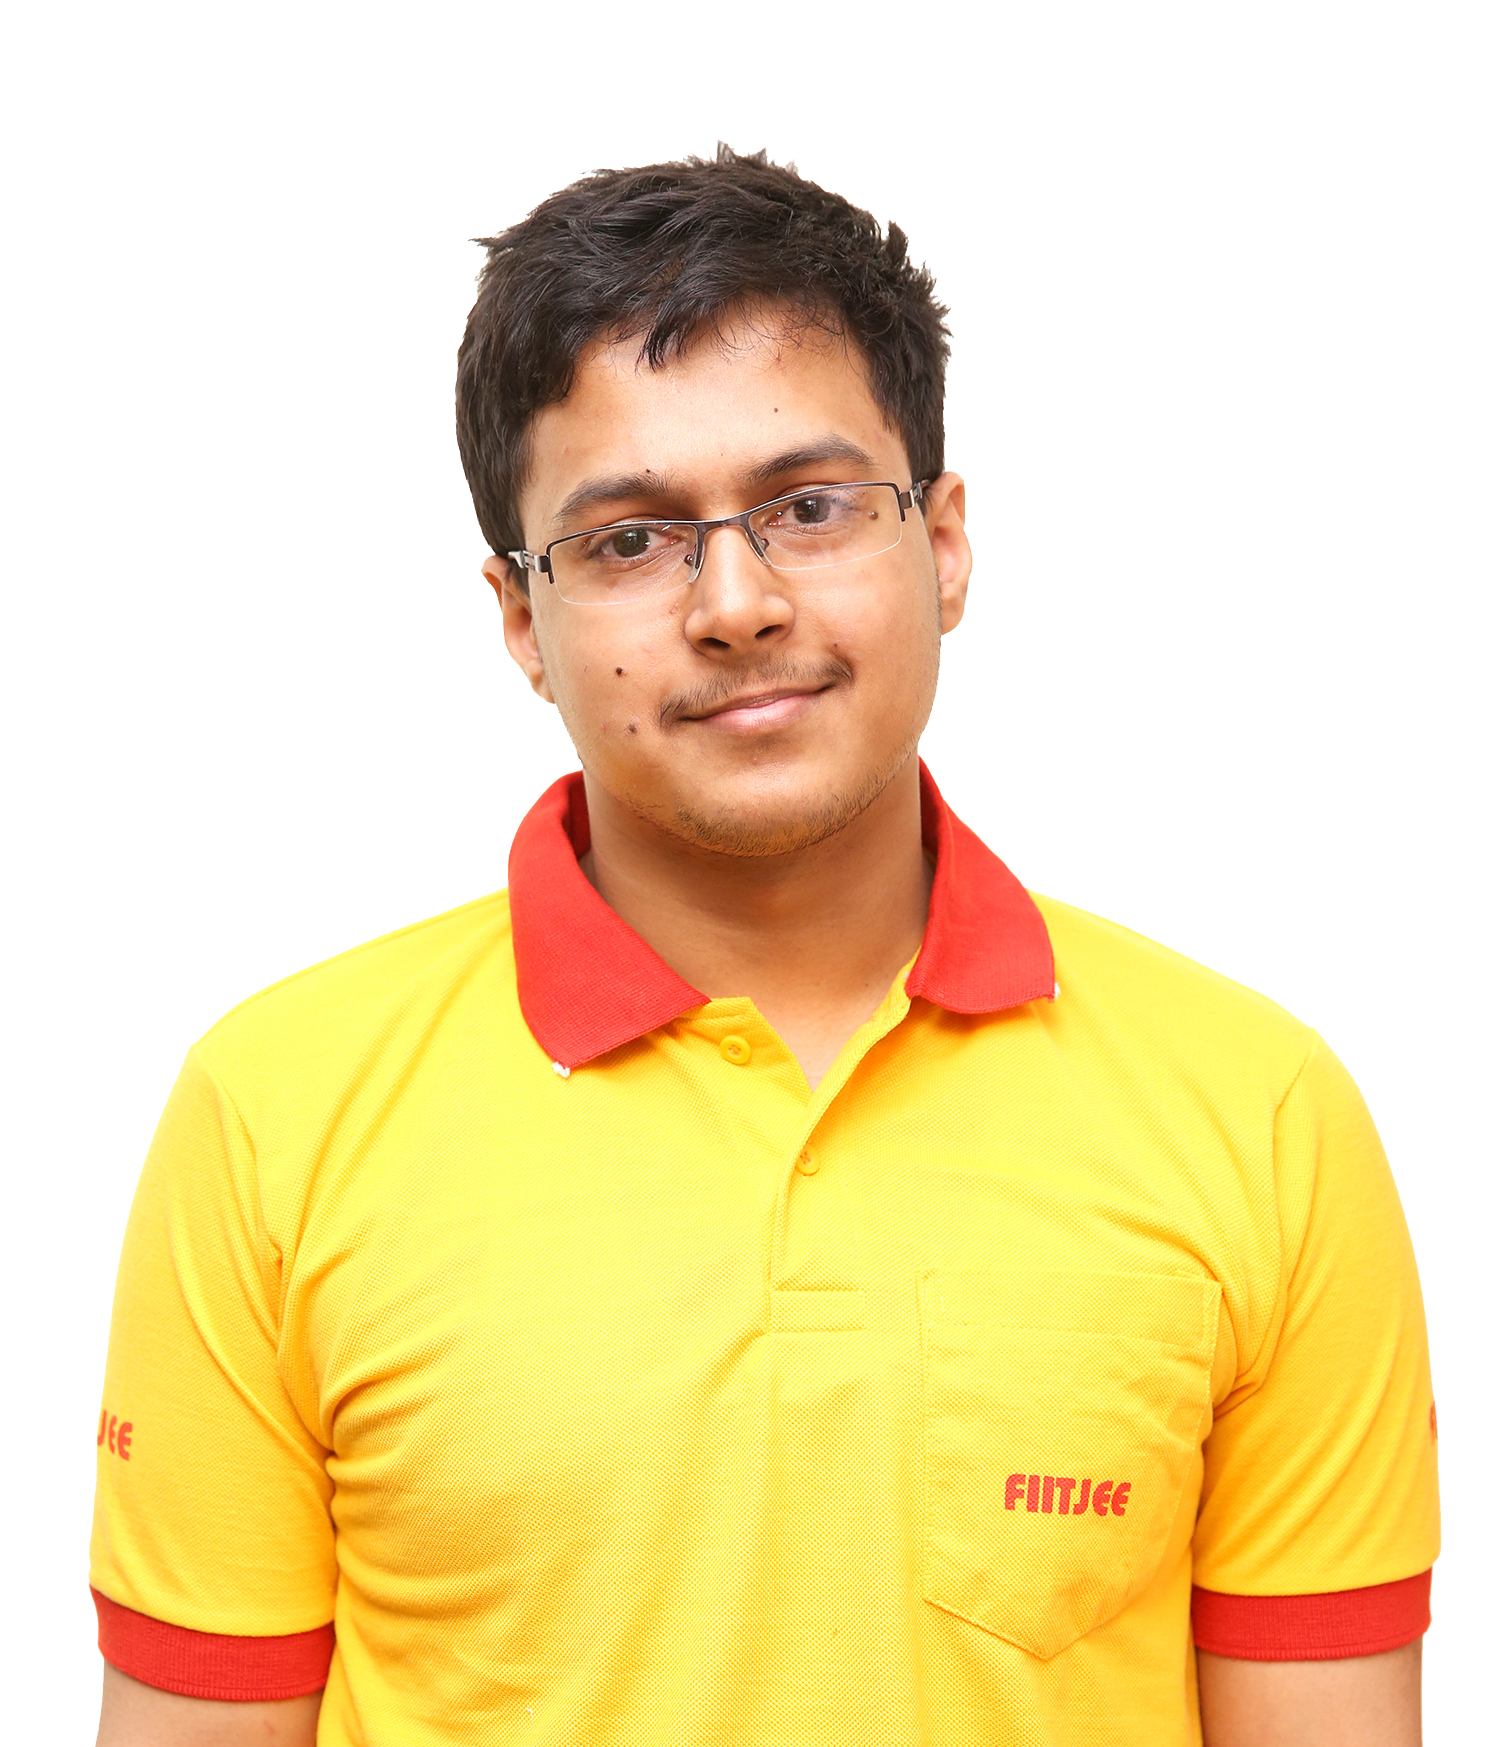 FIITJEE RESULT: JEE MAINS & ADVANCE 2018